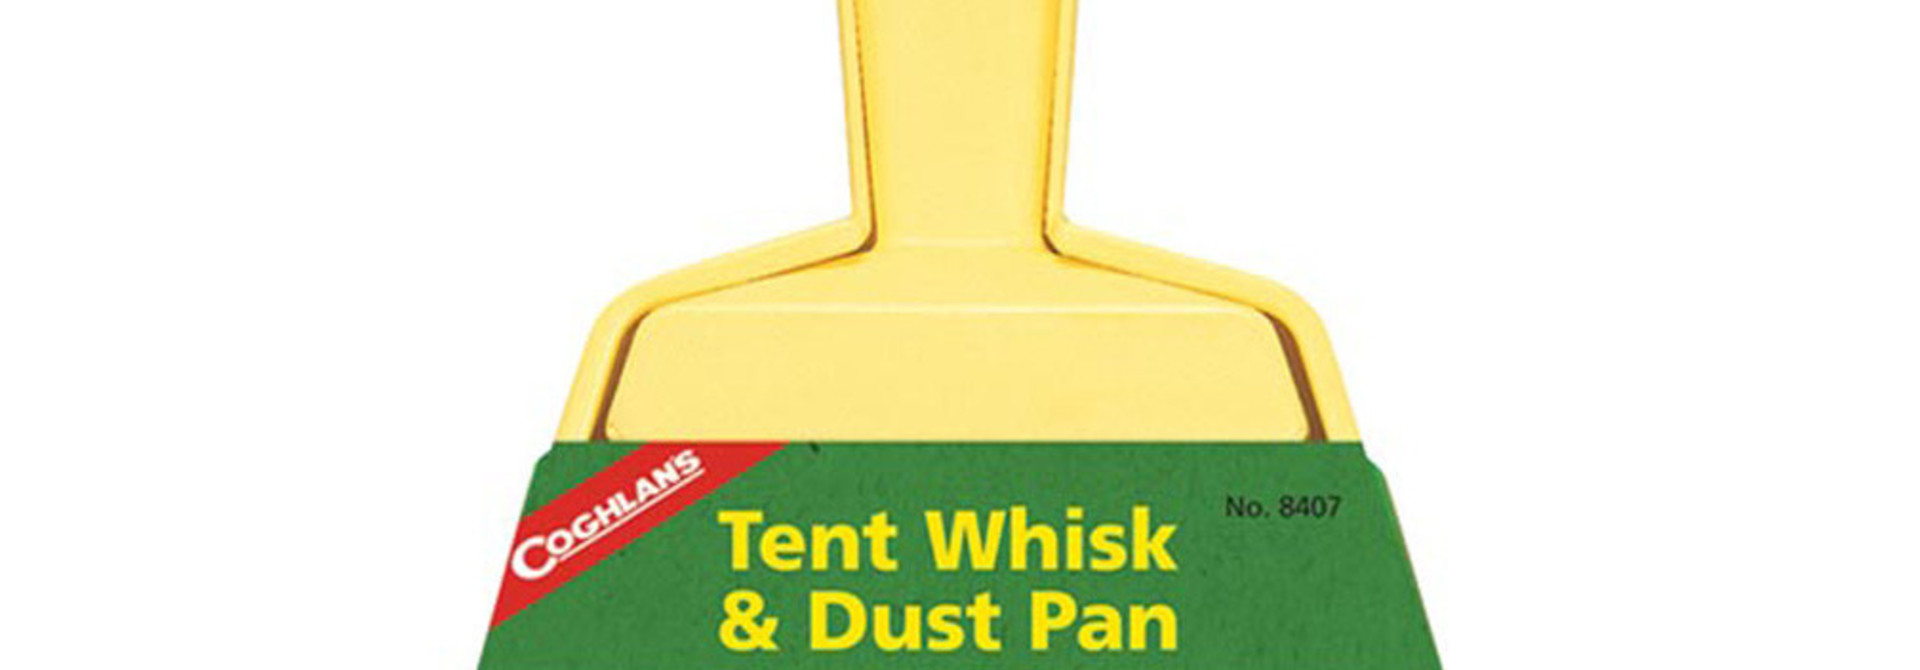 Tent Whisk and Dustpan